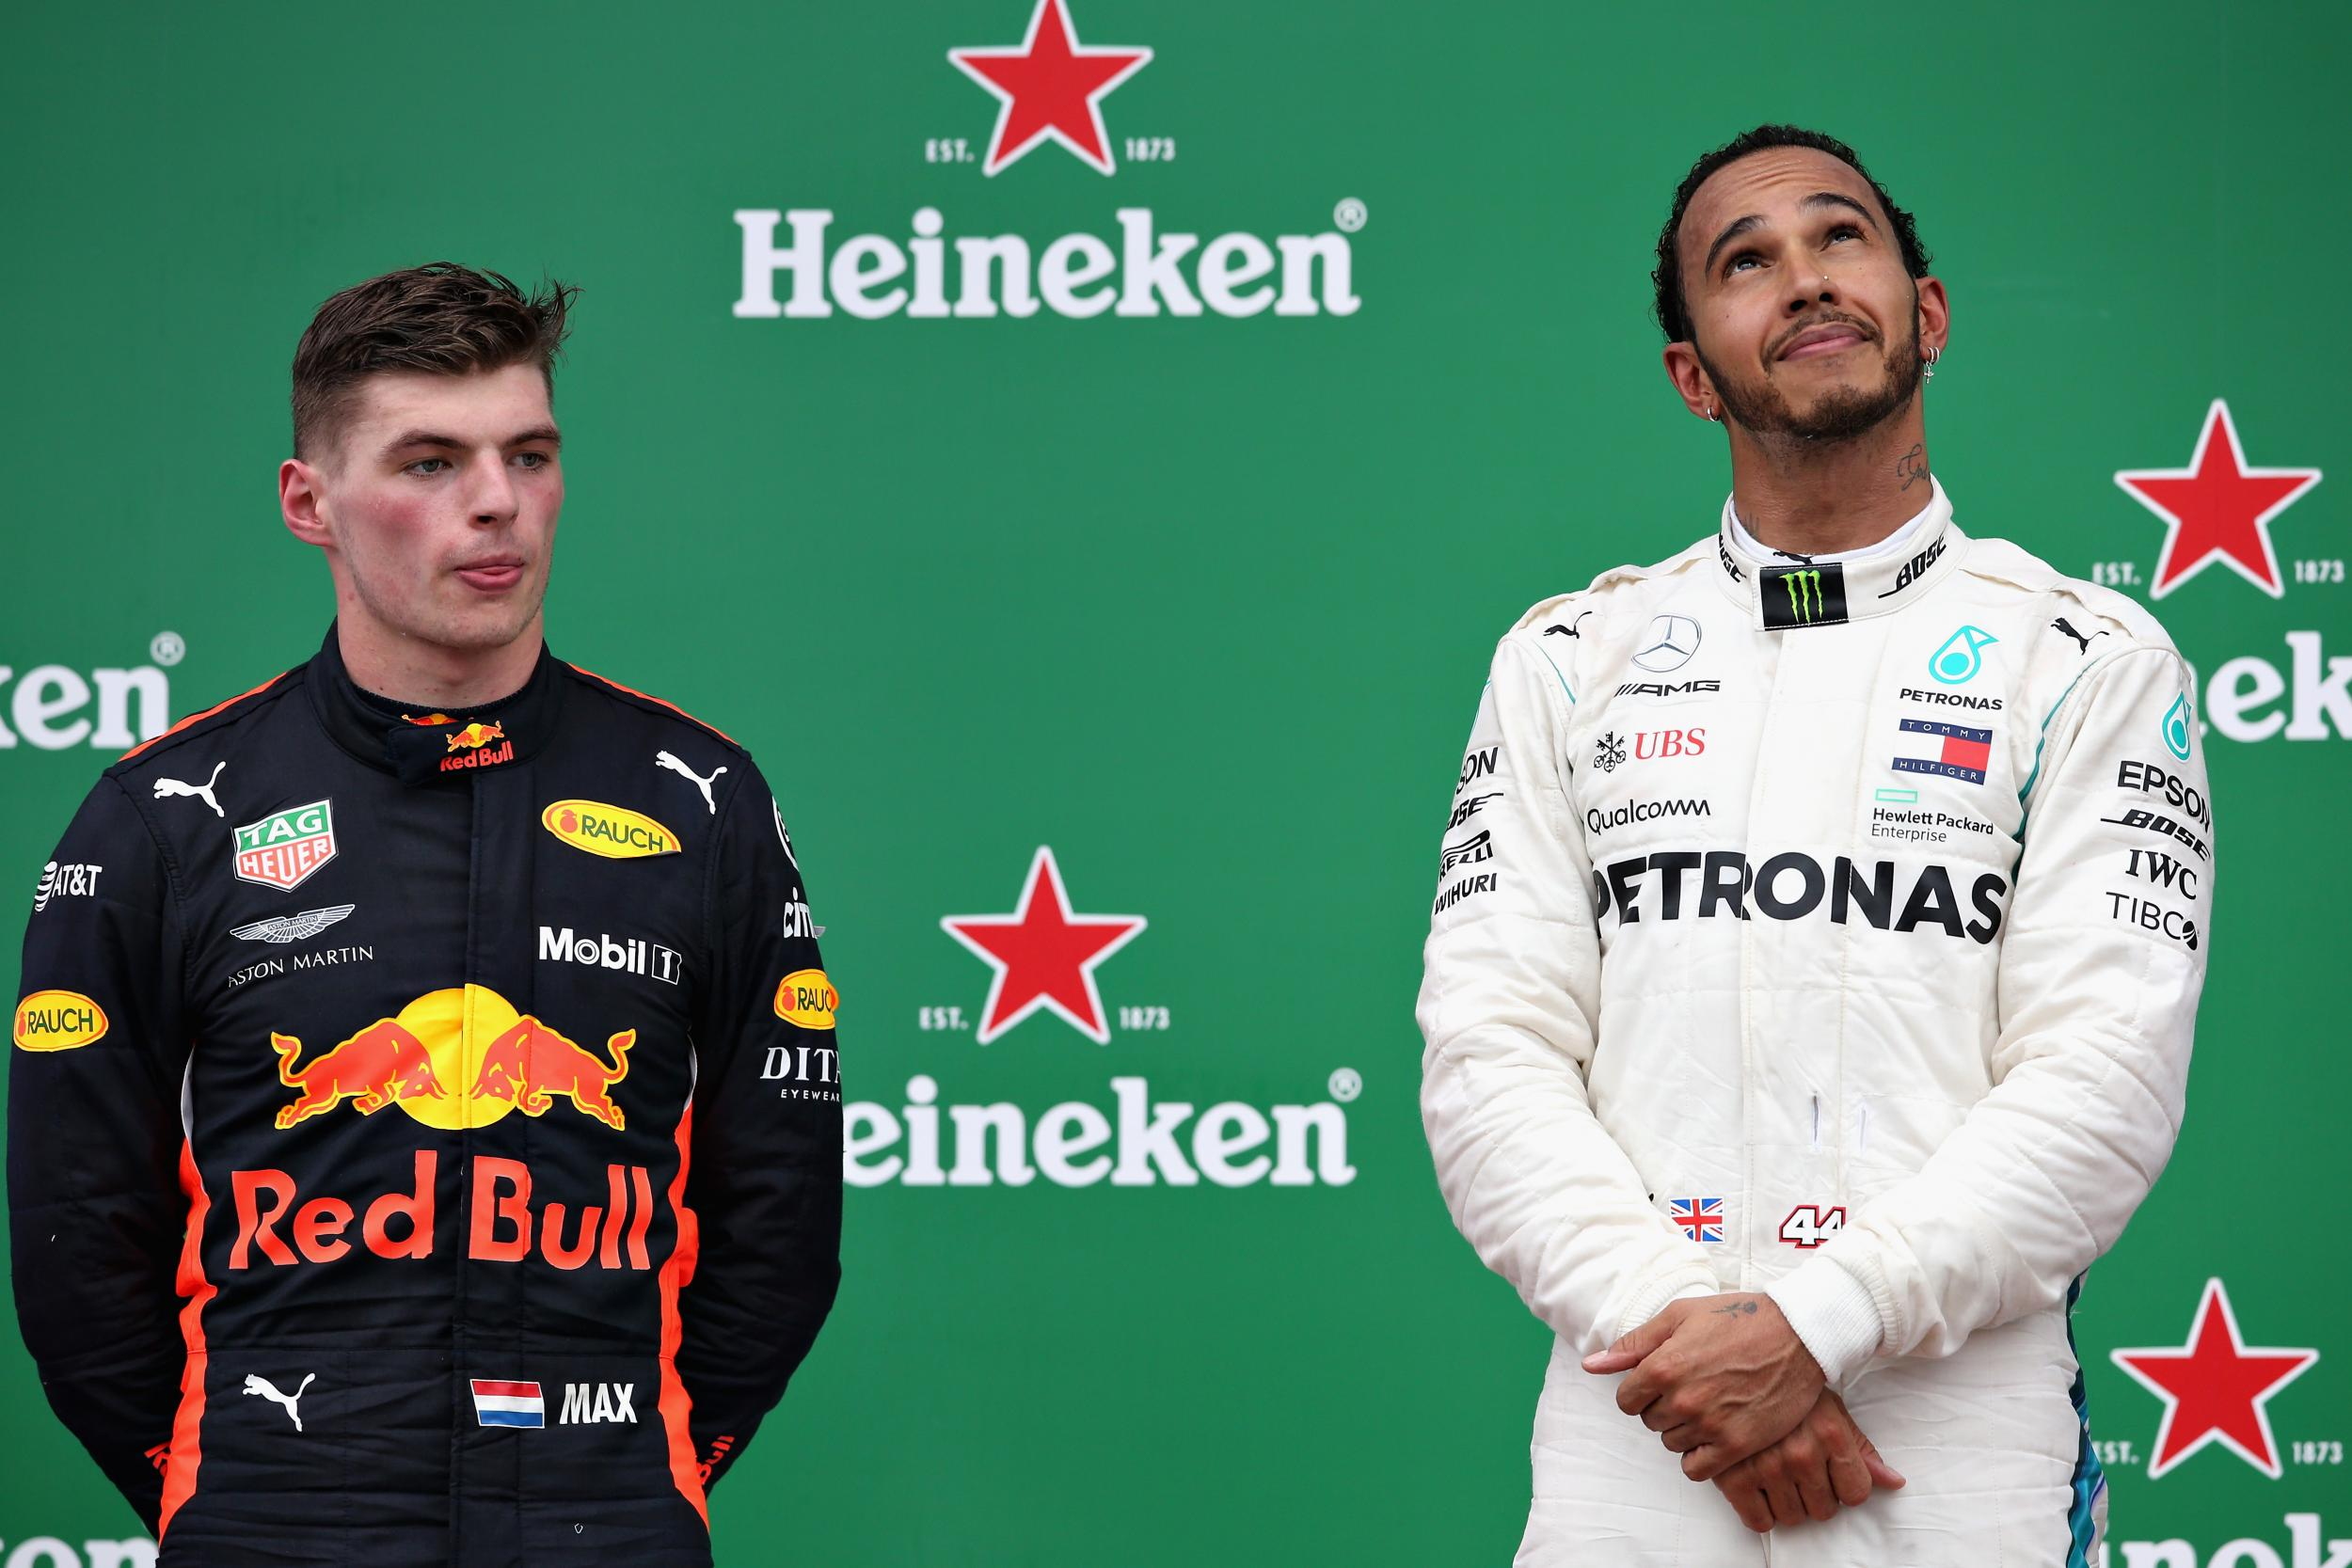 https://static.independent.co.uk/s3fs-public/thumbnails/image/2018/11/13/14/max-verstappen-lewis-hamilton.jpg